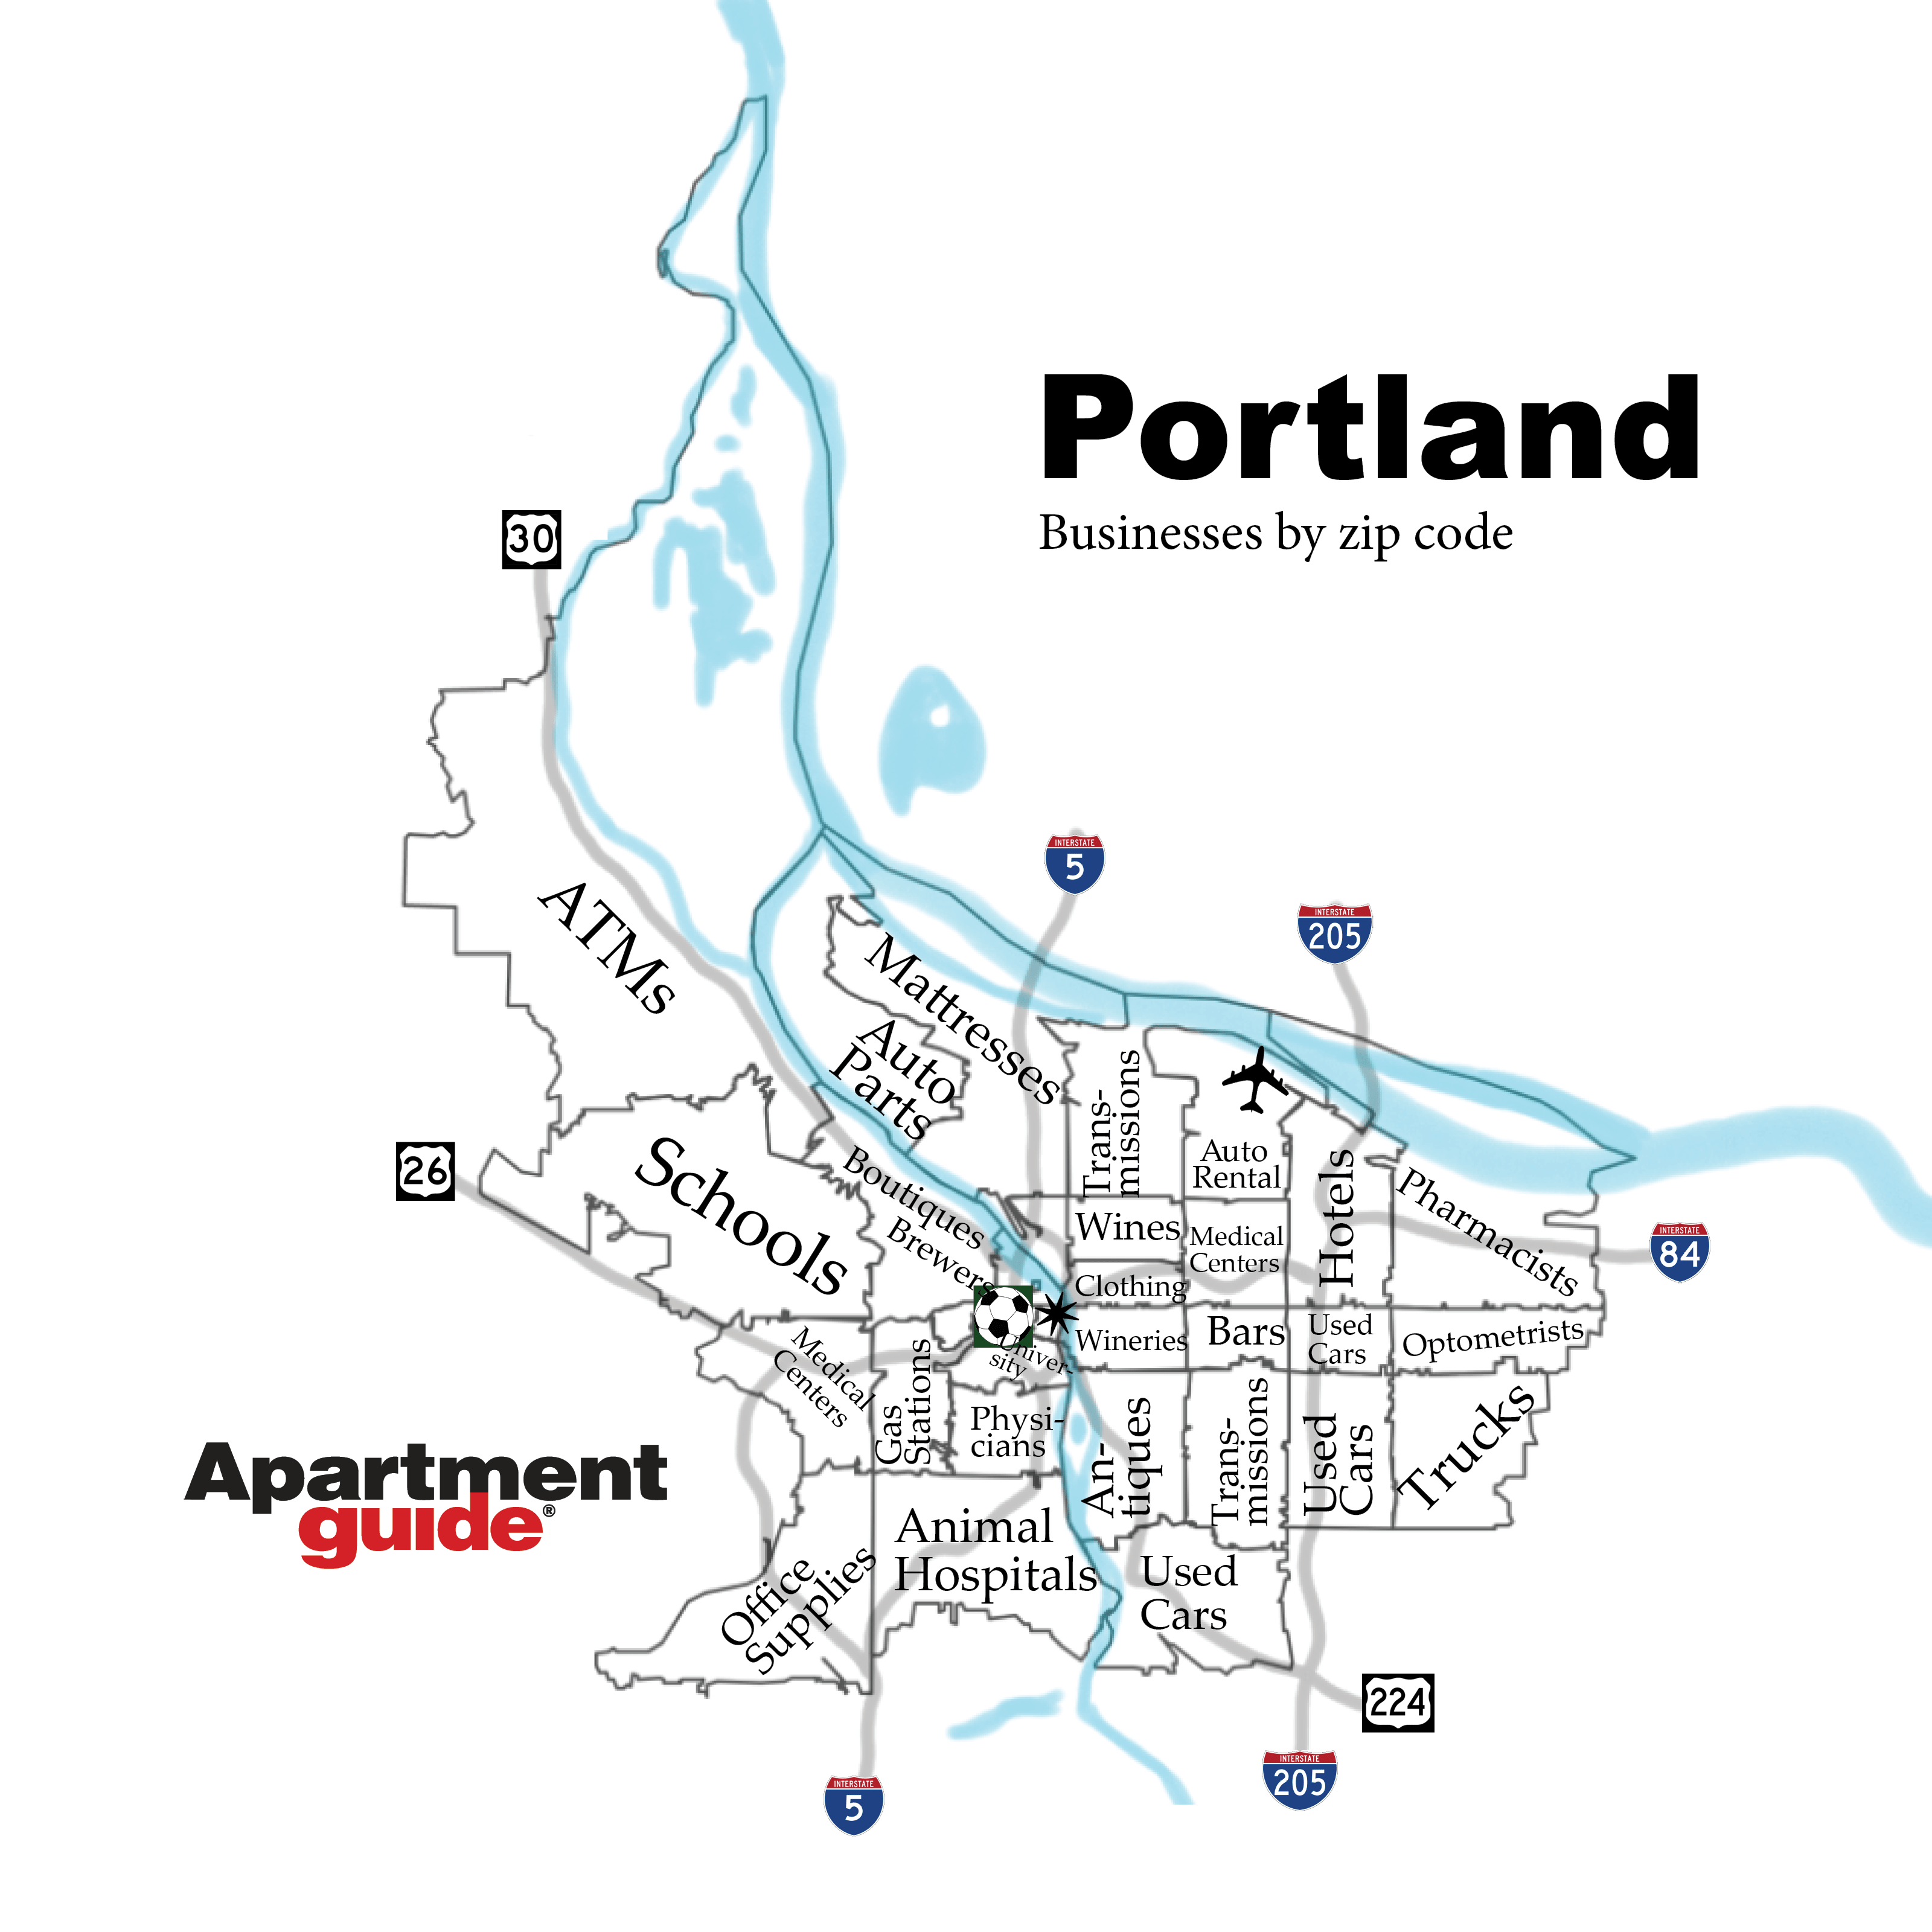 This Is How Portland Looks According To Most Popular Businesses